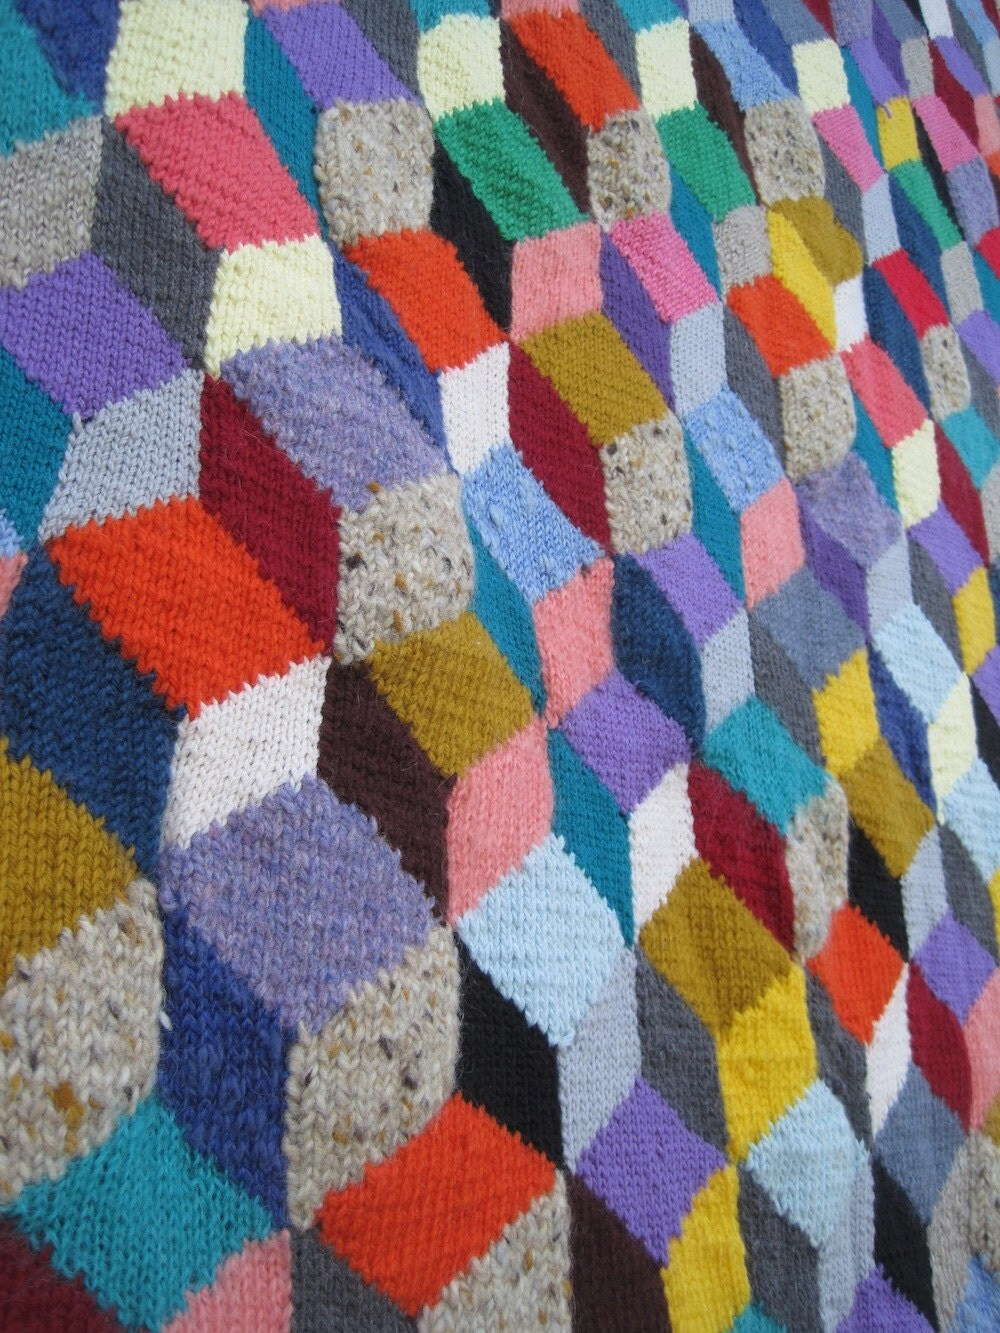 Knitted Quilt Block Patterns : Cube Block Knit Lined Afghan Quilt Blanket vintage